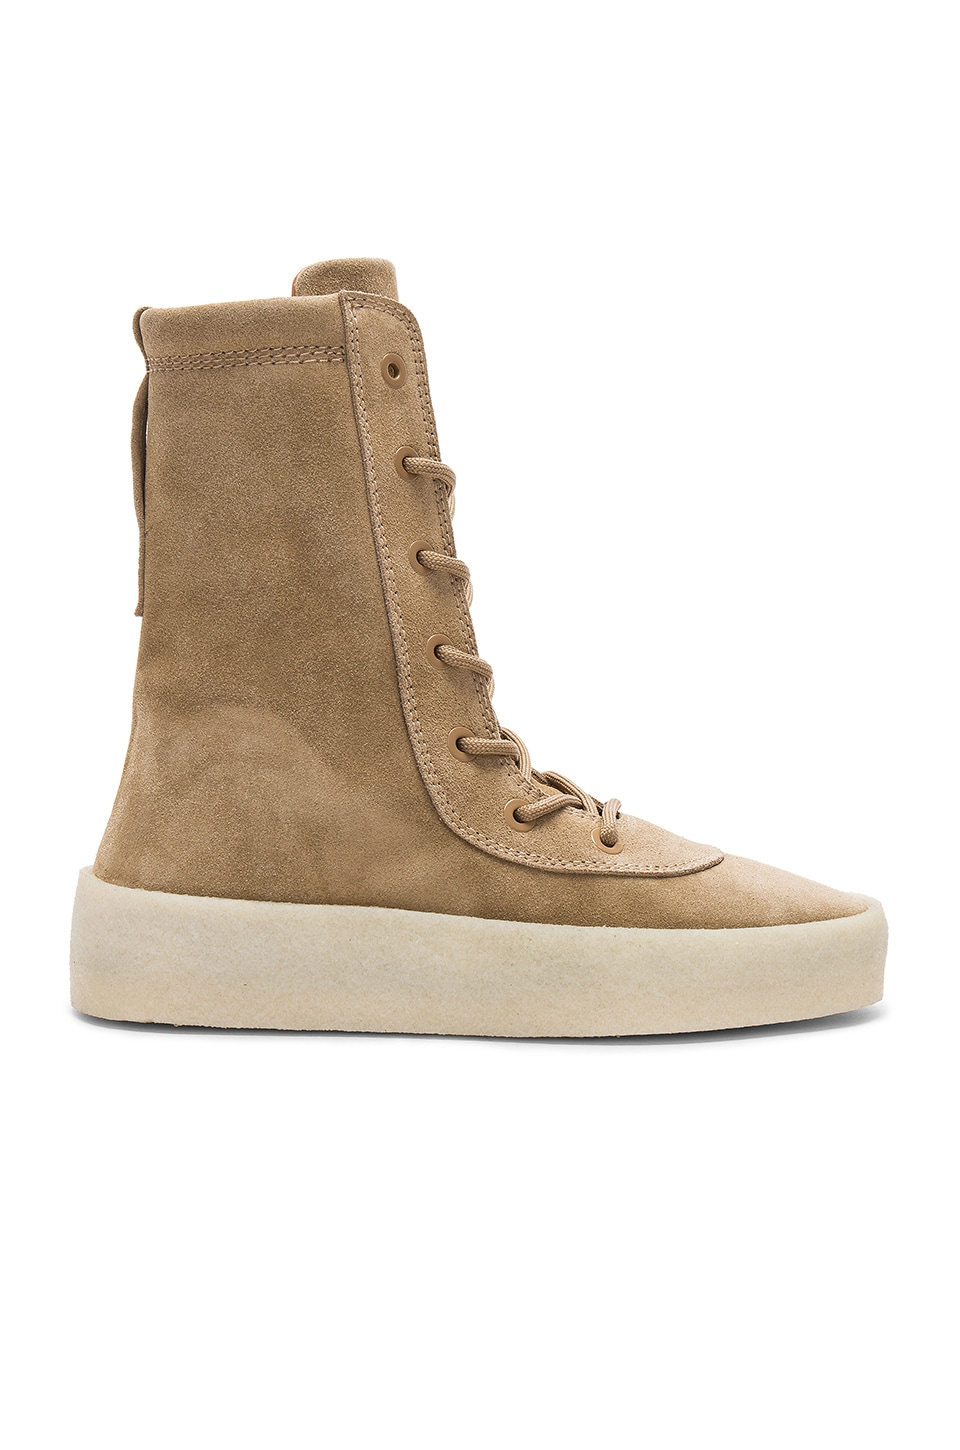 Photo of Crepe Boot by YEEZY Season 4 men clothes